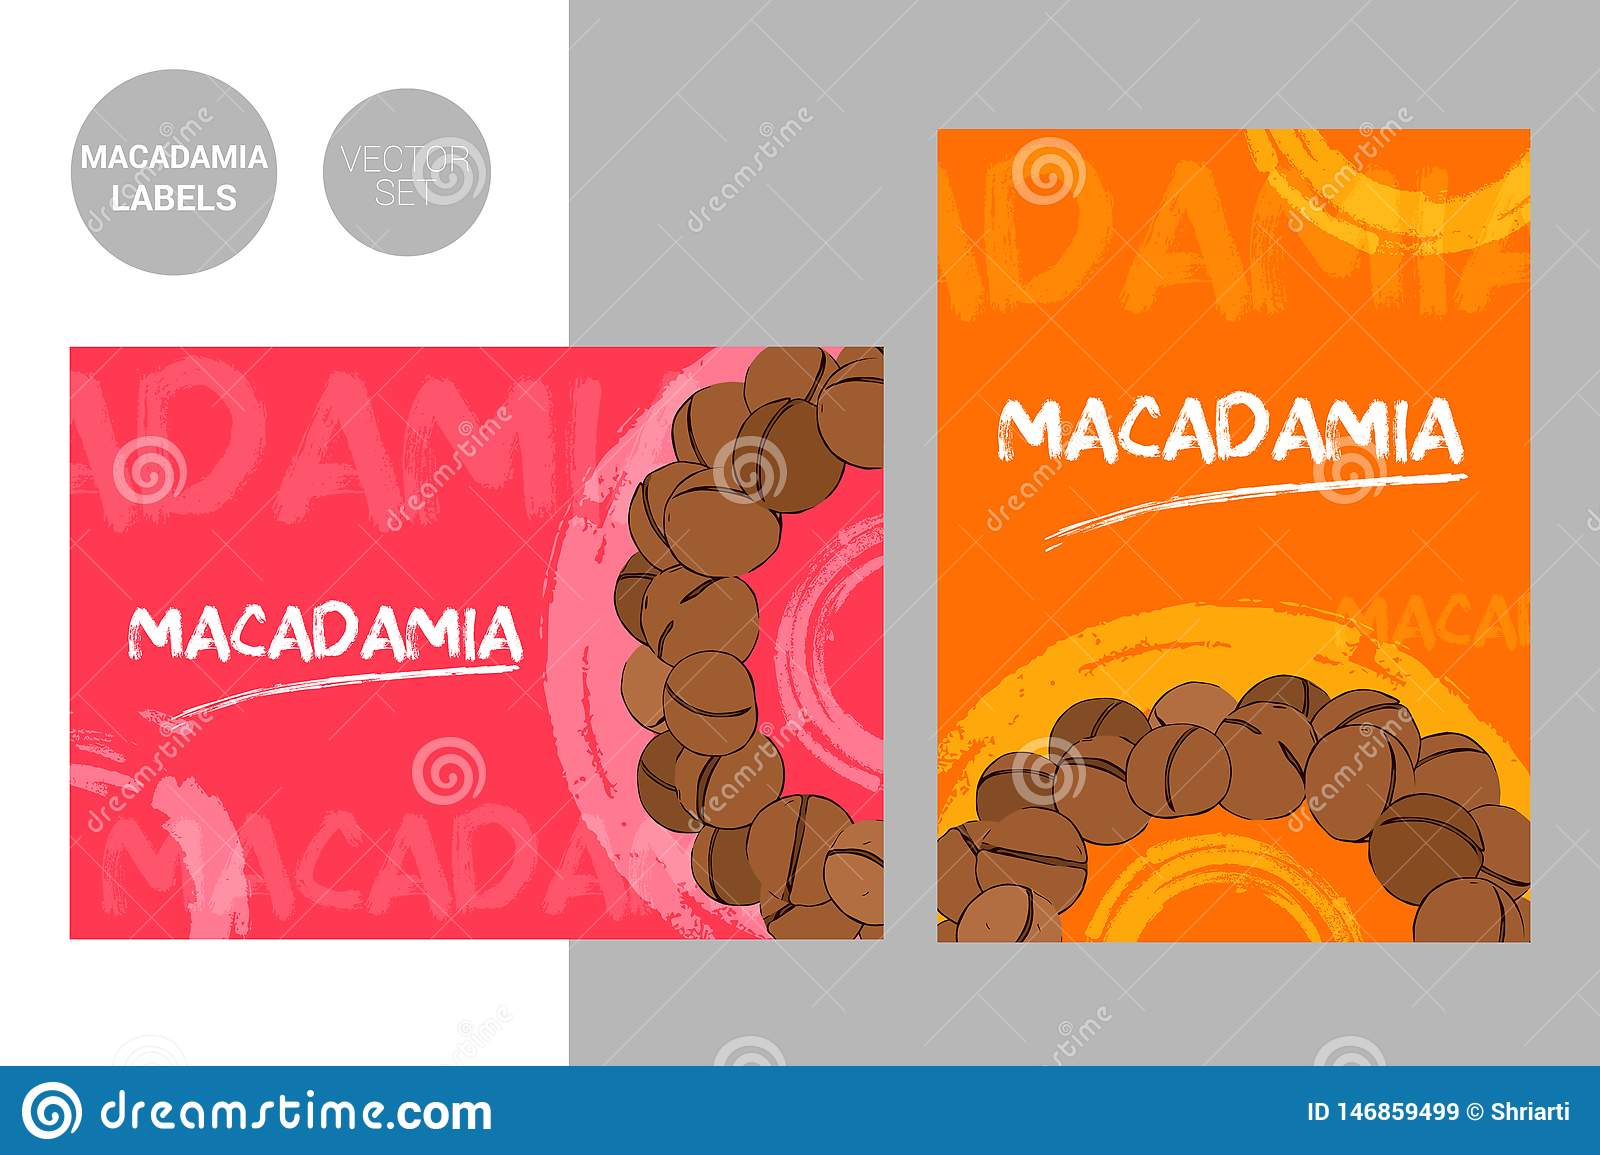 Creative macadamia nuts labels in red and orange colors with hand drawn typography and brush stroke elements.